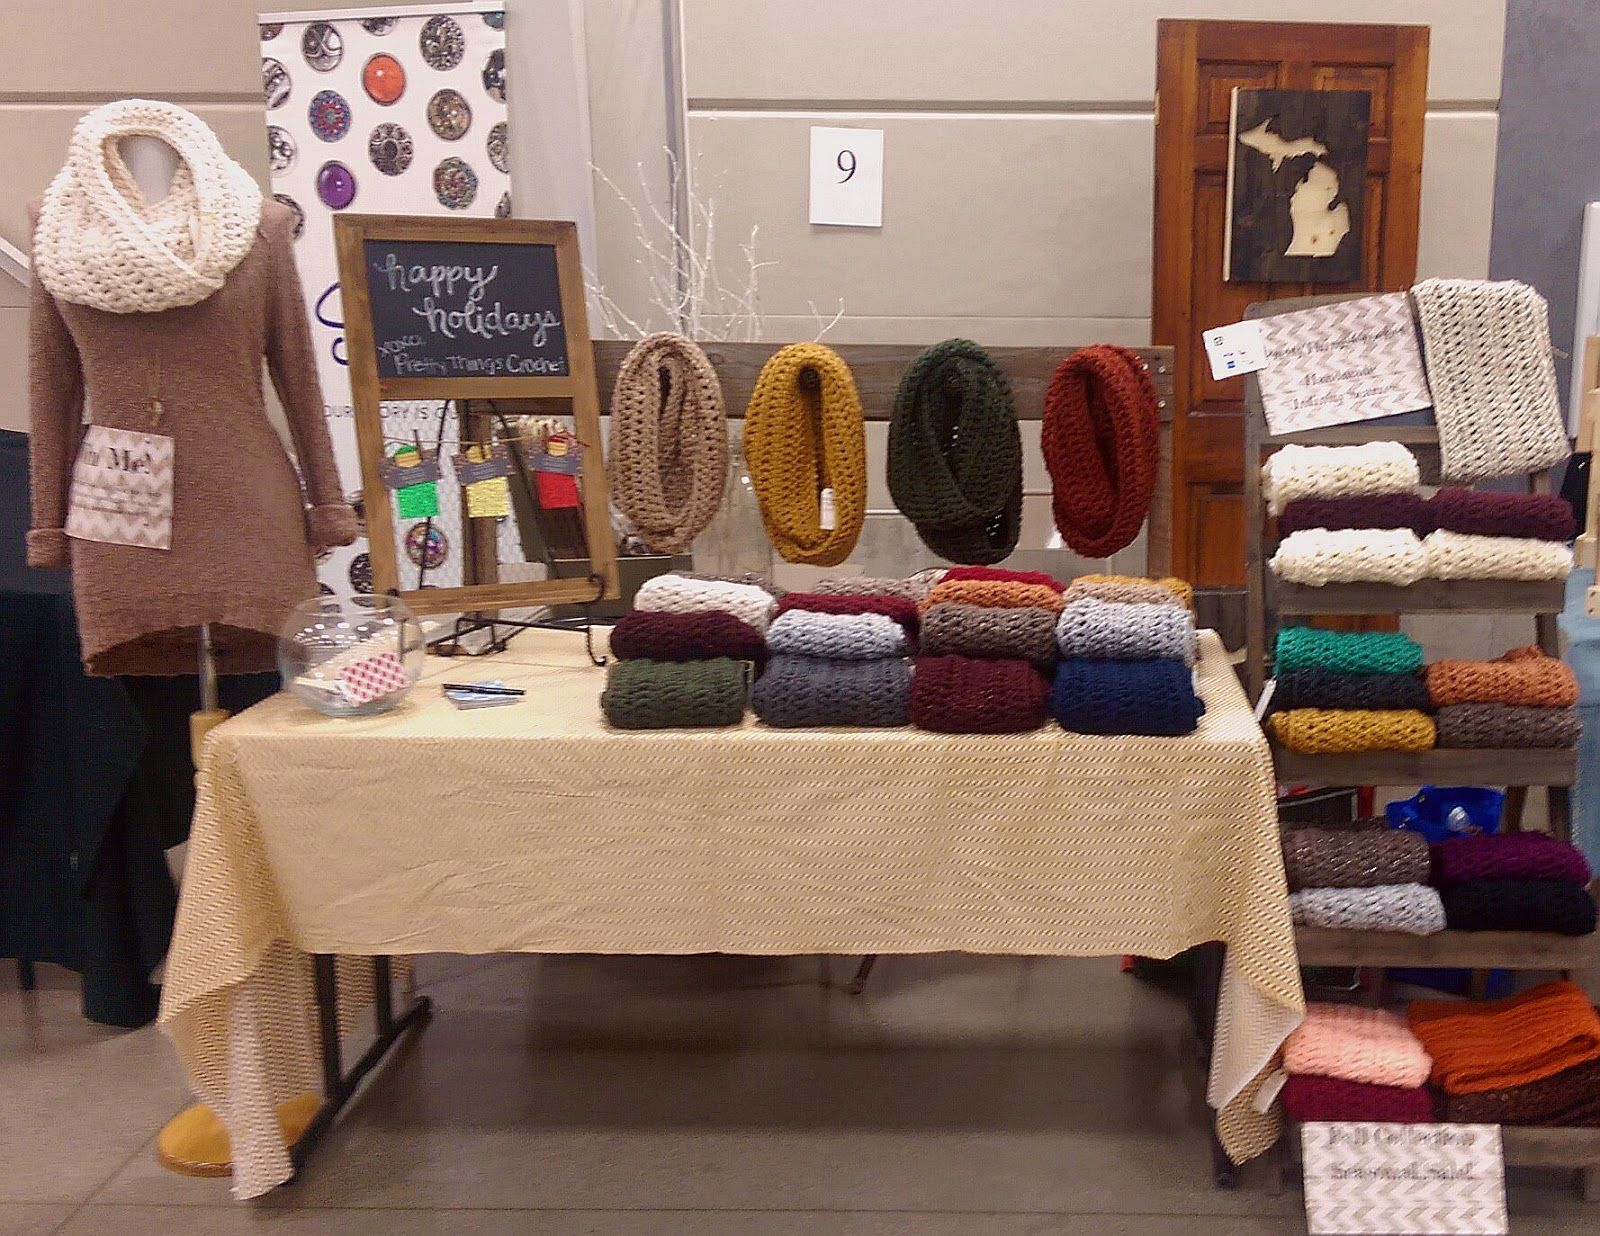 craft show setup and display idea for infinity scarves and crochet goods